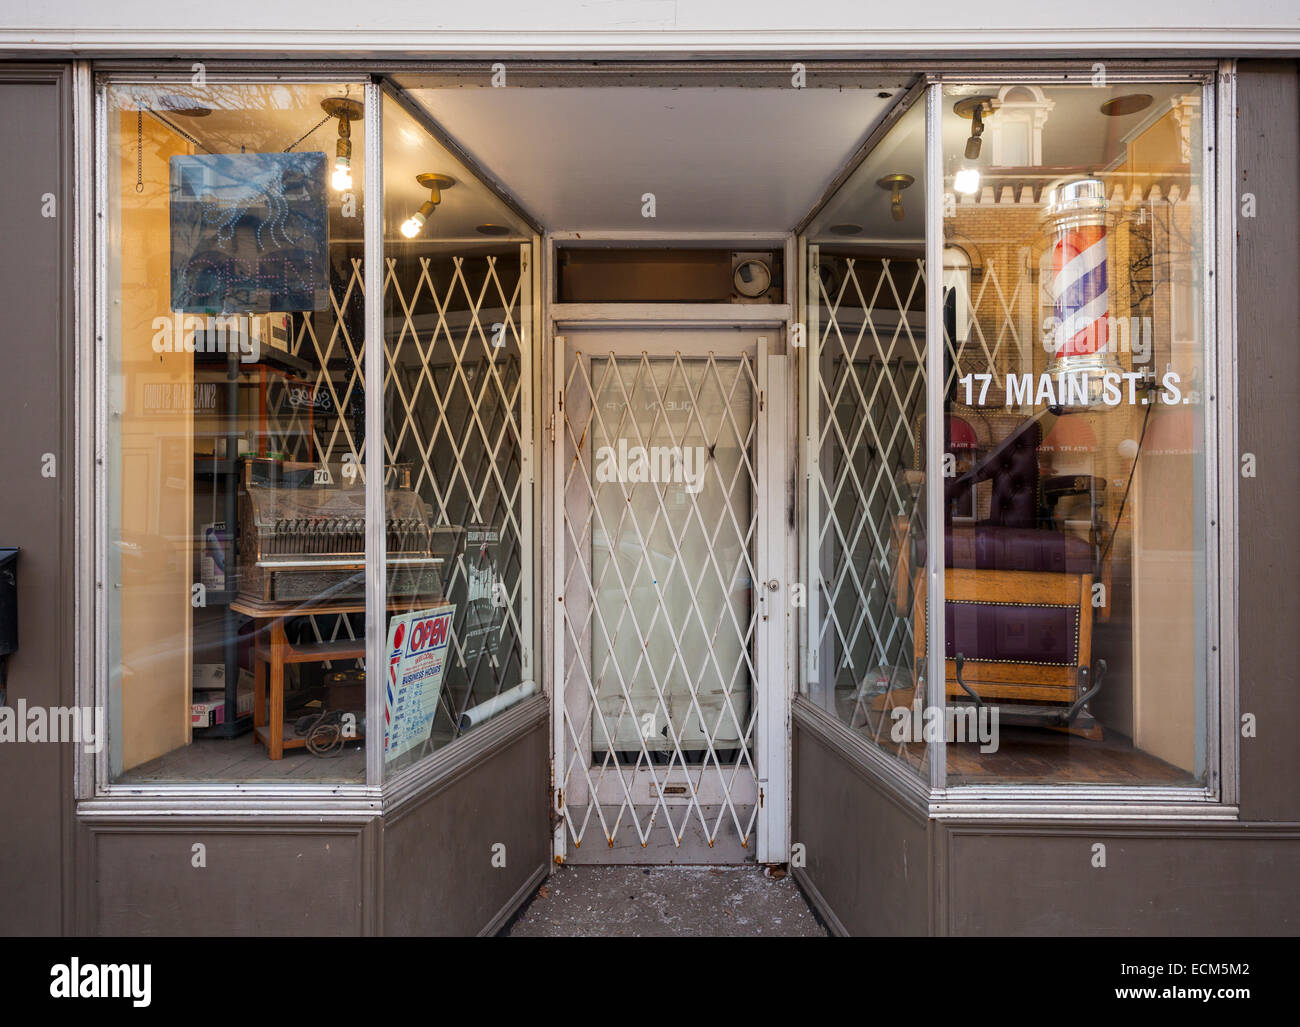 A traditional barber shop with antique furniture in the window. Downtown, Brampton, Ontario, Canada. - Stock Image